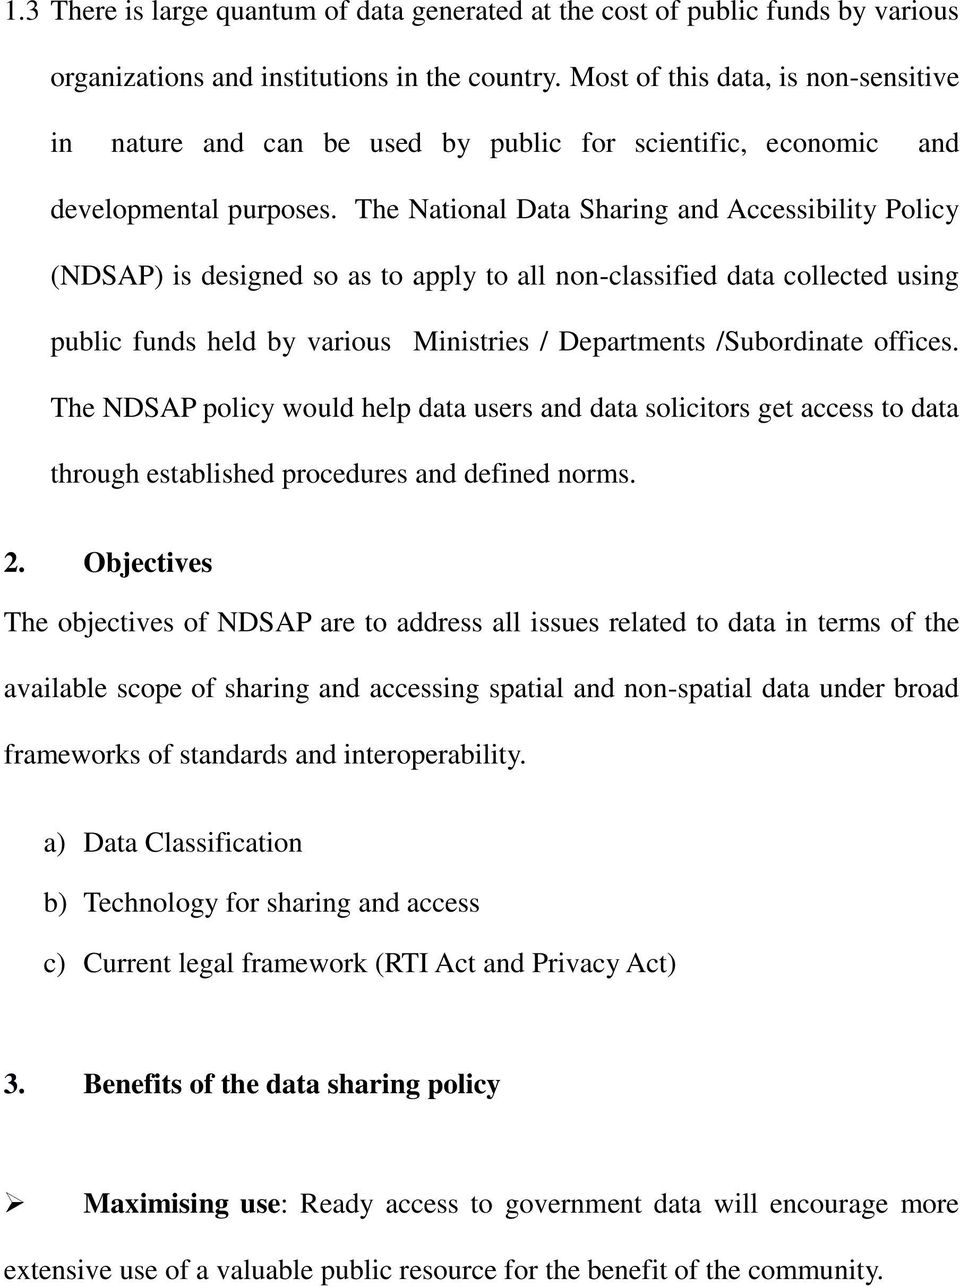 The National Data Sharing and Accessibility Policy (NDSAP) is designed so as to apply to all non-classified data collected using public funds held by various Ministries / Departments /Subordinate